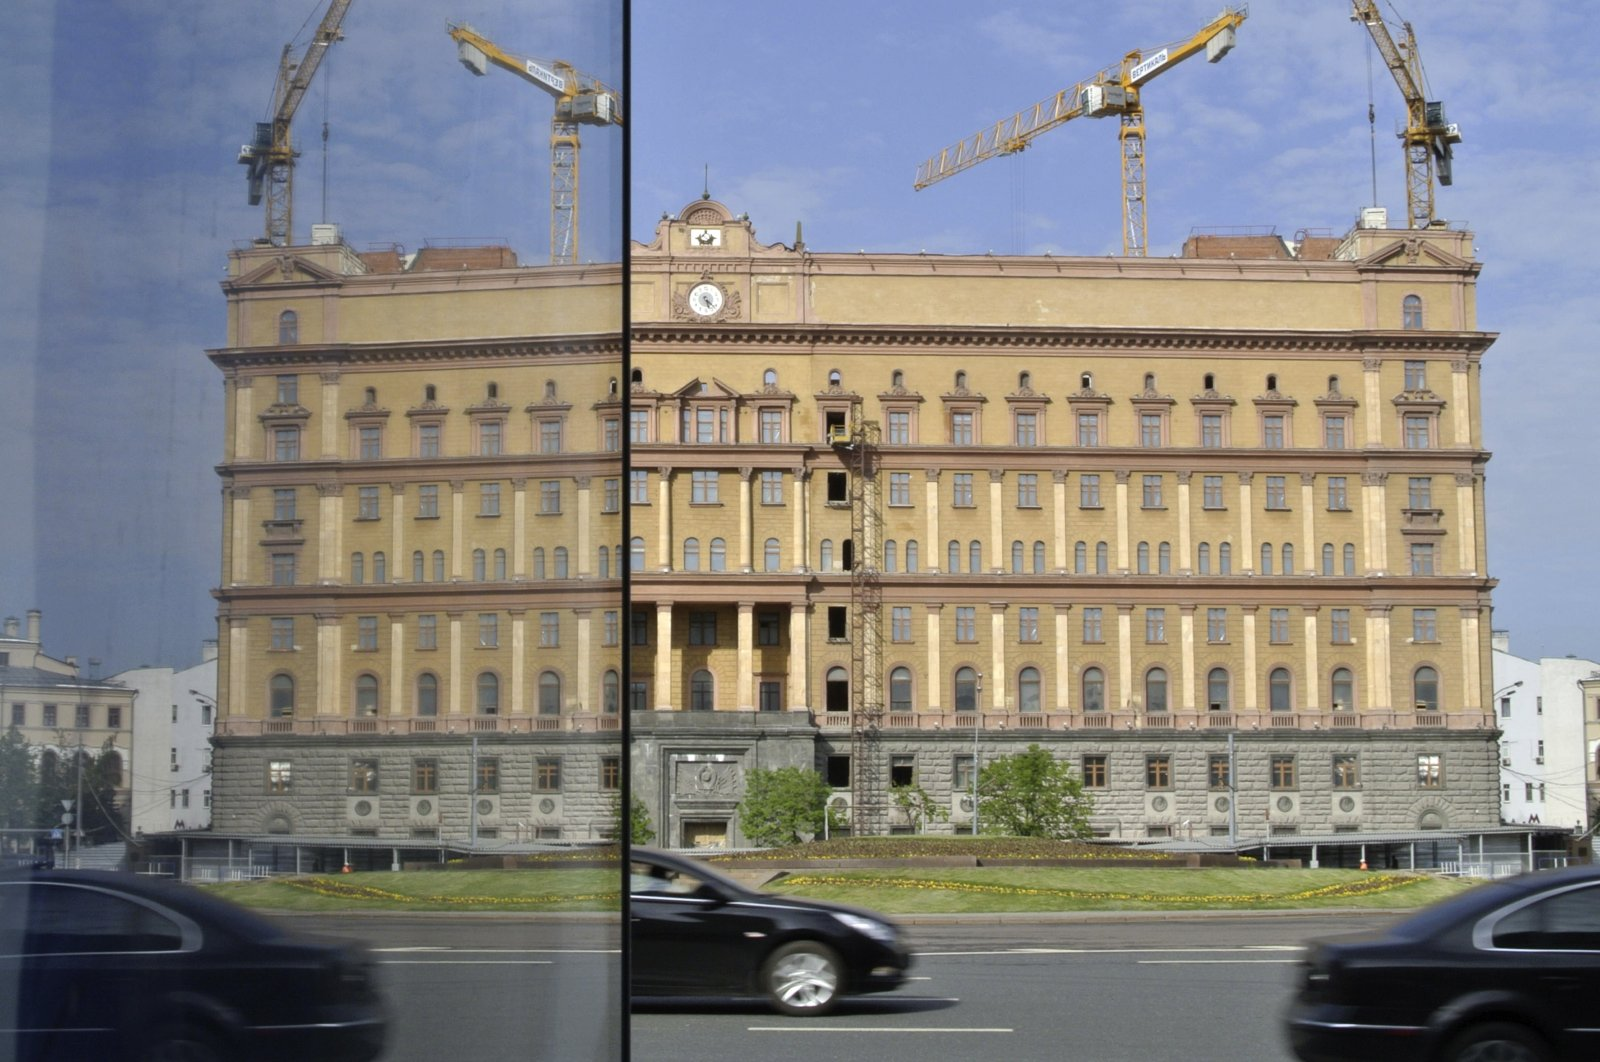 The main building of the Russian Federal Security Services, FSB, reflected in a shop's glass door on Lubyanka Square in Moscow, Russia, May 14, 2013. (AP Photo)